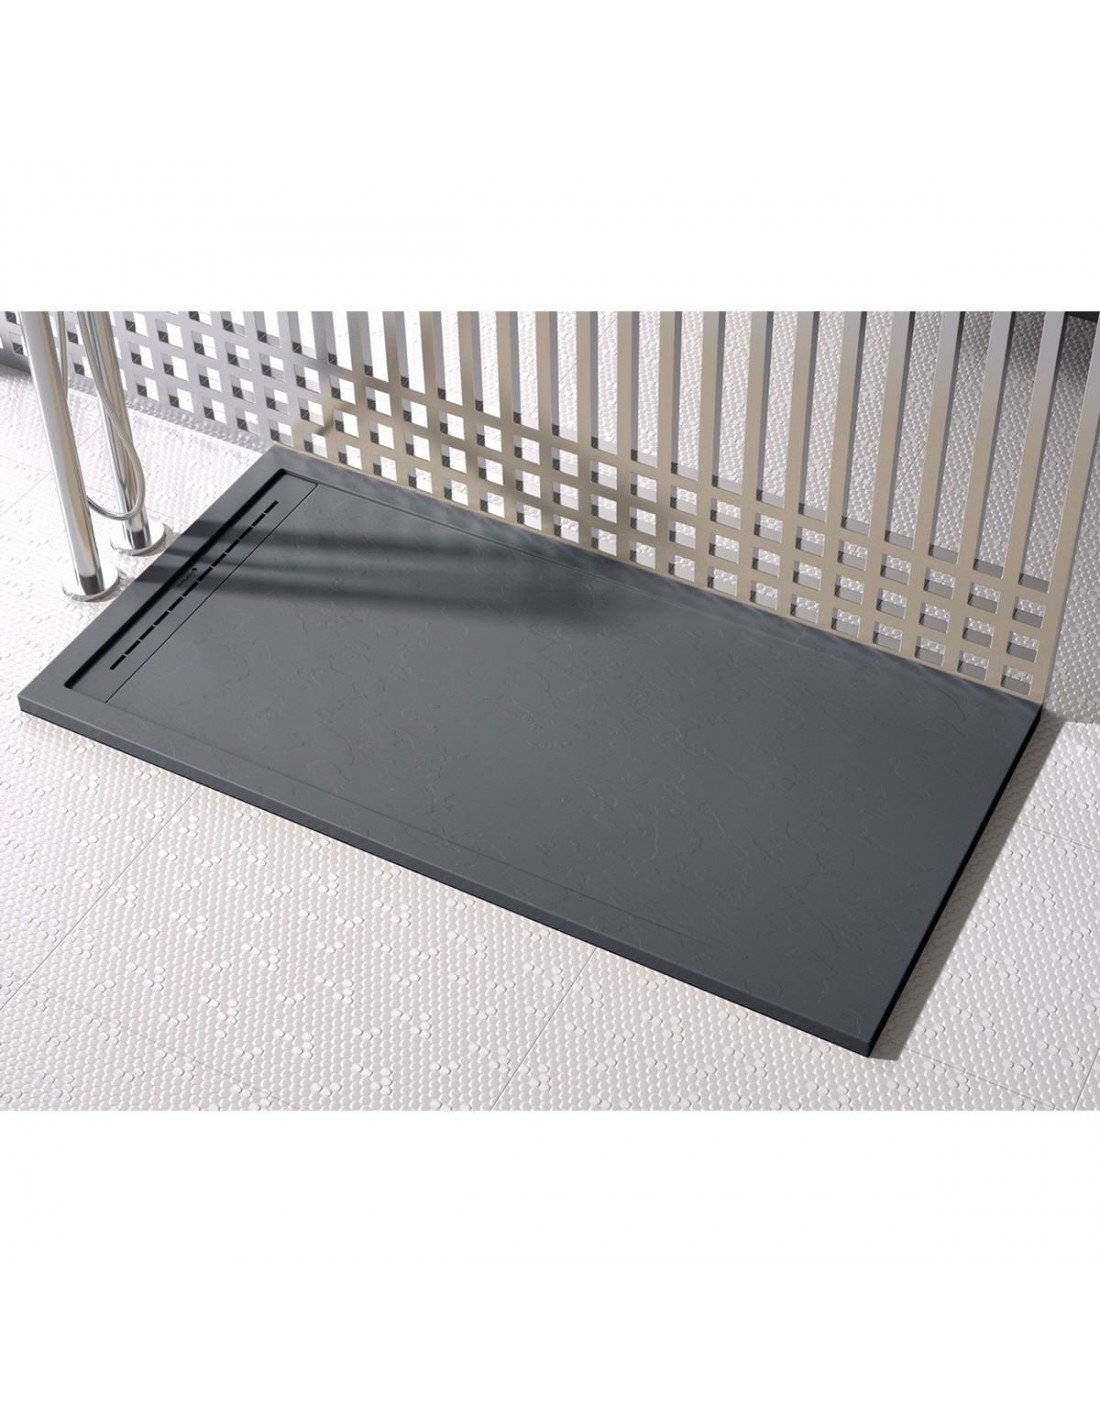 Shower Tray Duplach 1200 x 1200 mm Stone Cach Black | Wet Rooms Design